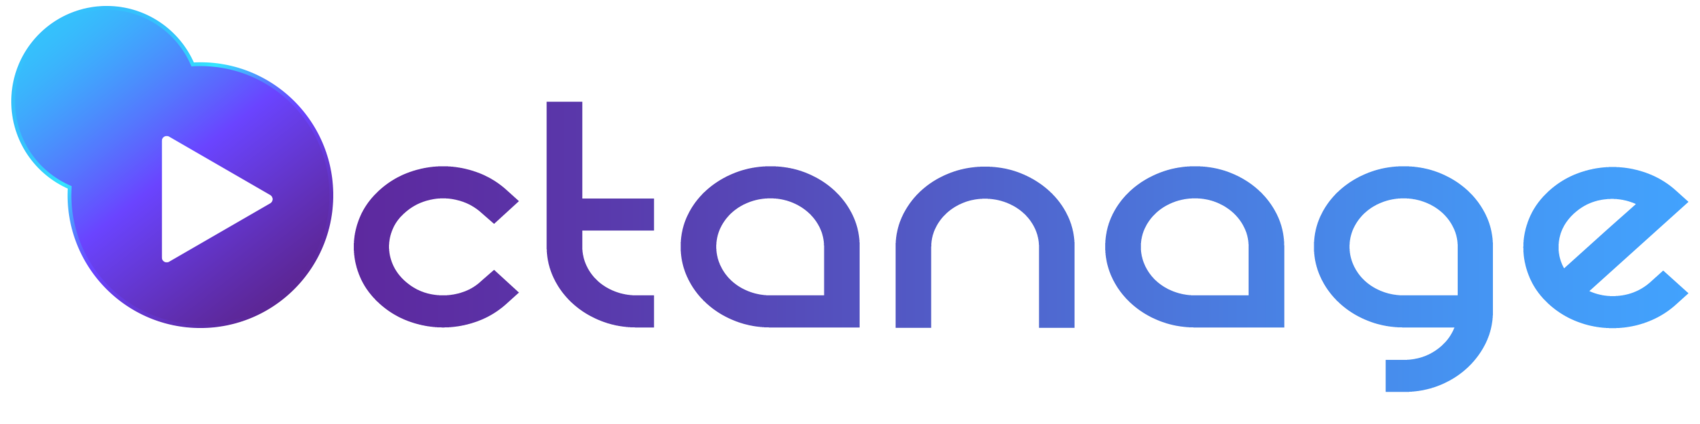 octanage.com